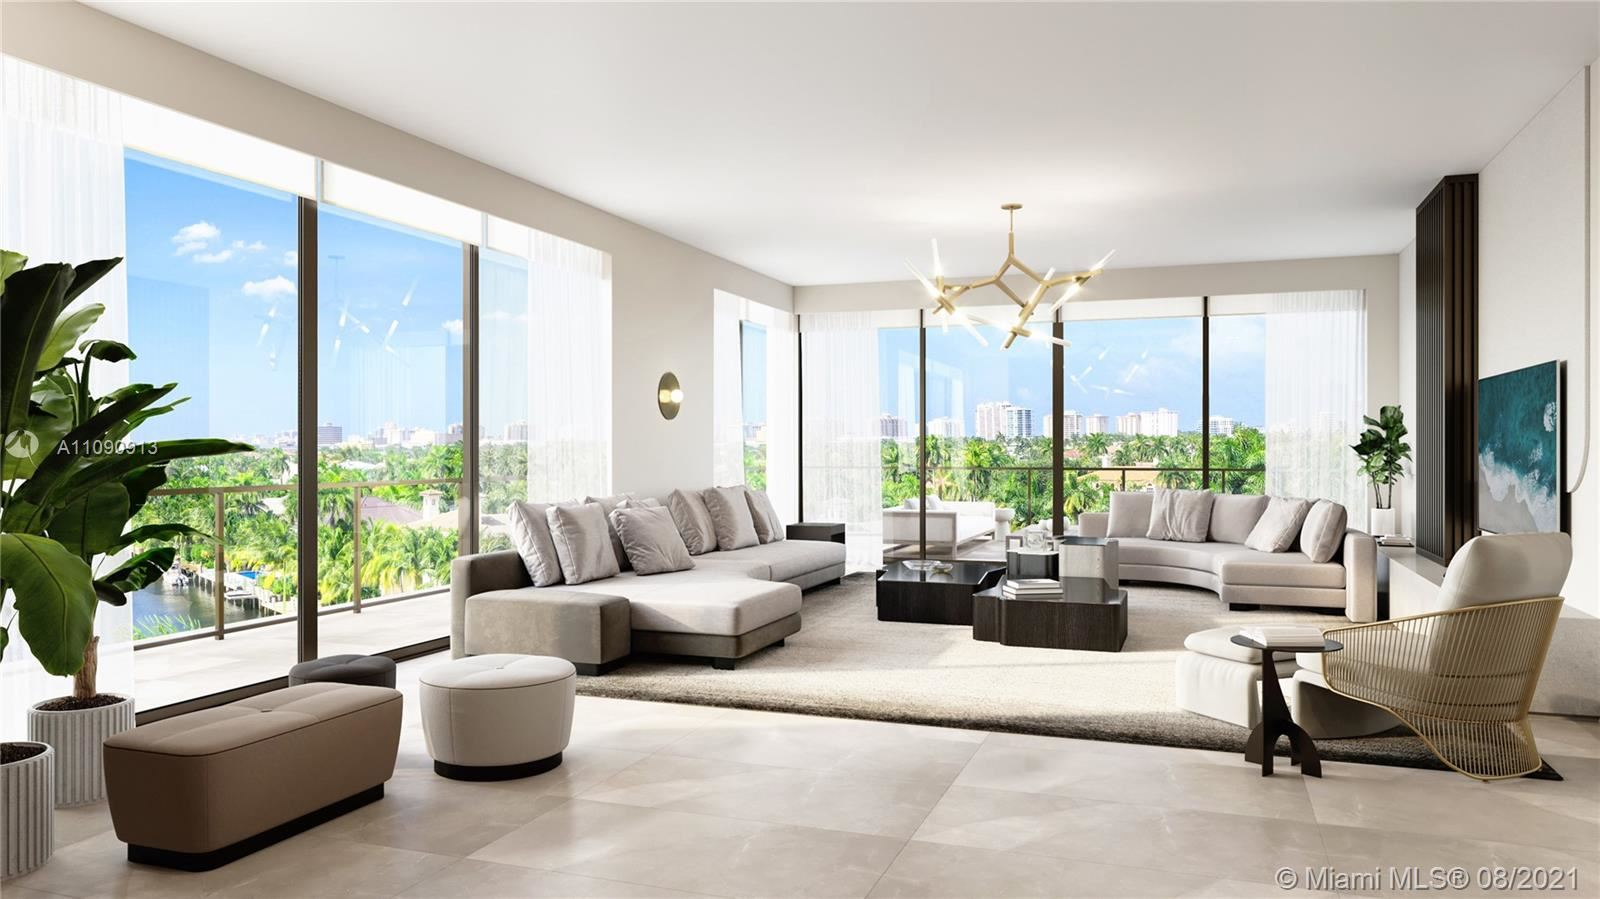 160 Isle Of Venice Dr. #304, Fort Lauderdale, FL 33301 - #: A11090913